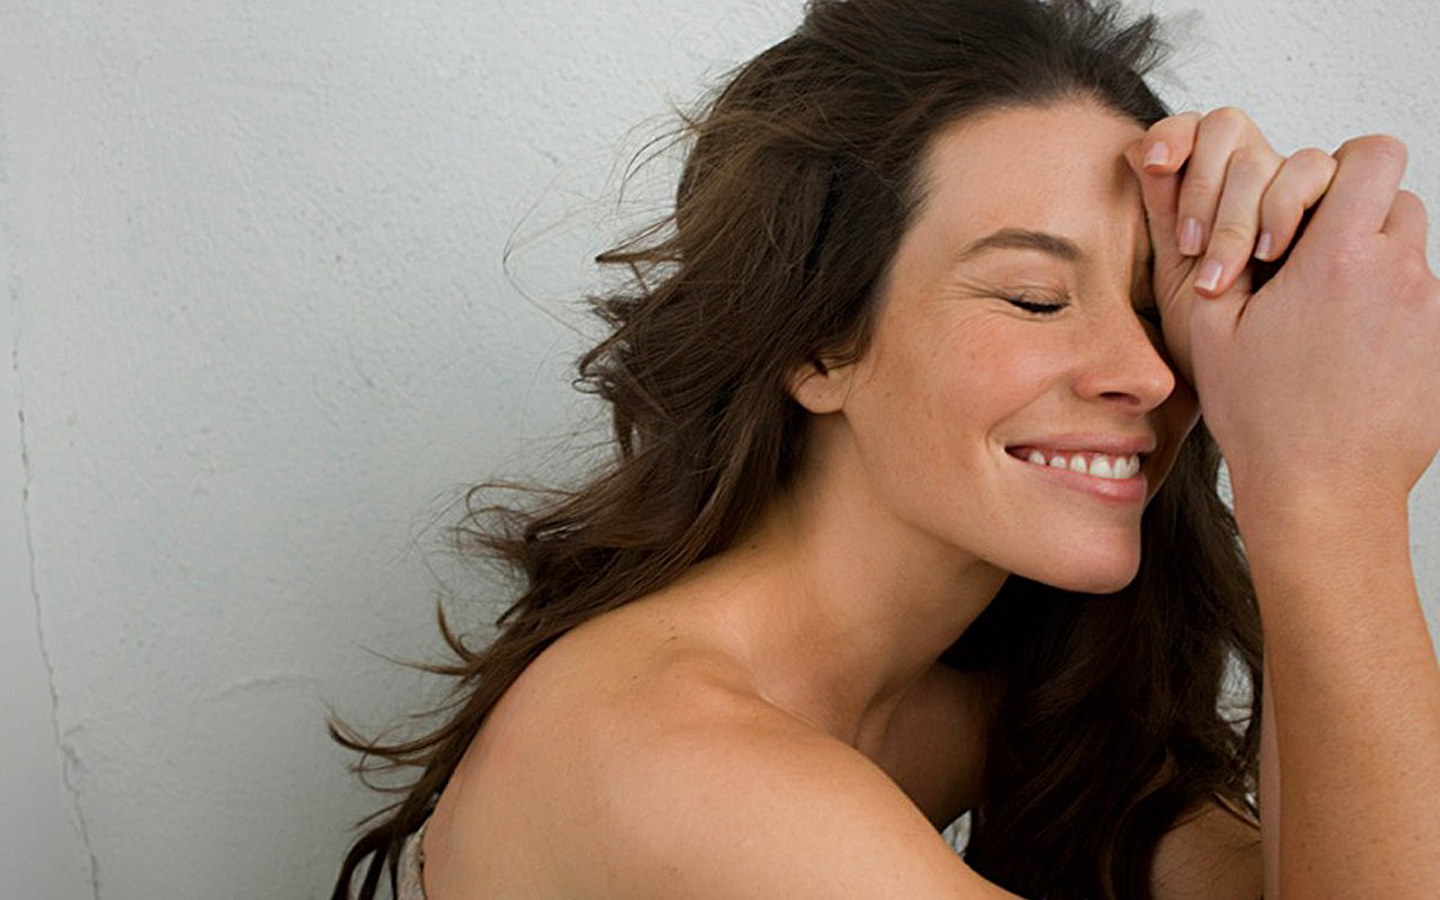 Evangeline Lilly Hot Photos Love Love Story Love 1440x900